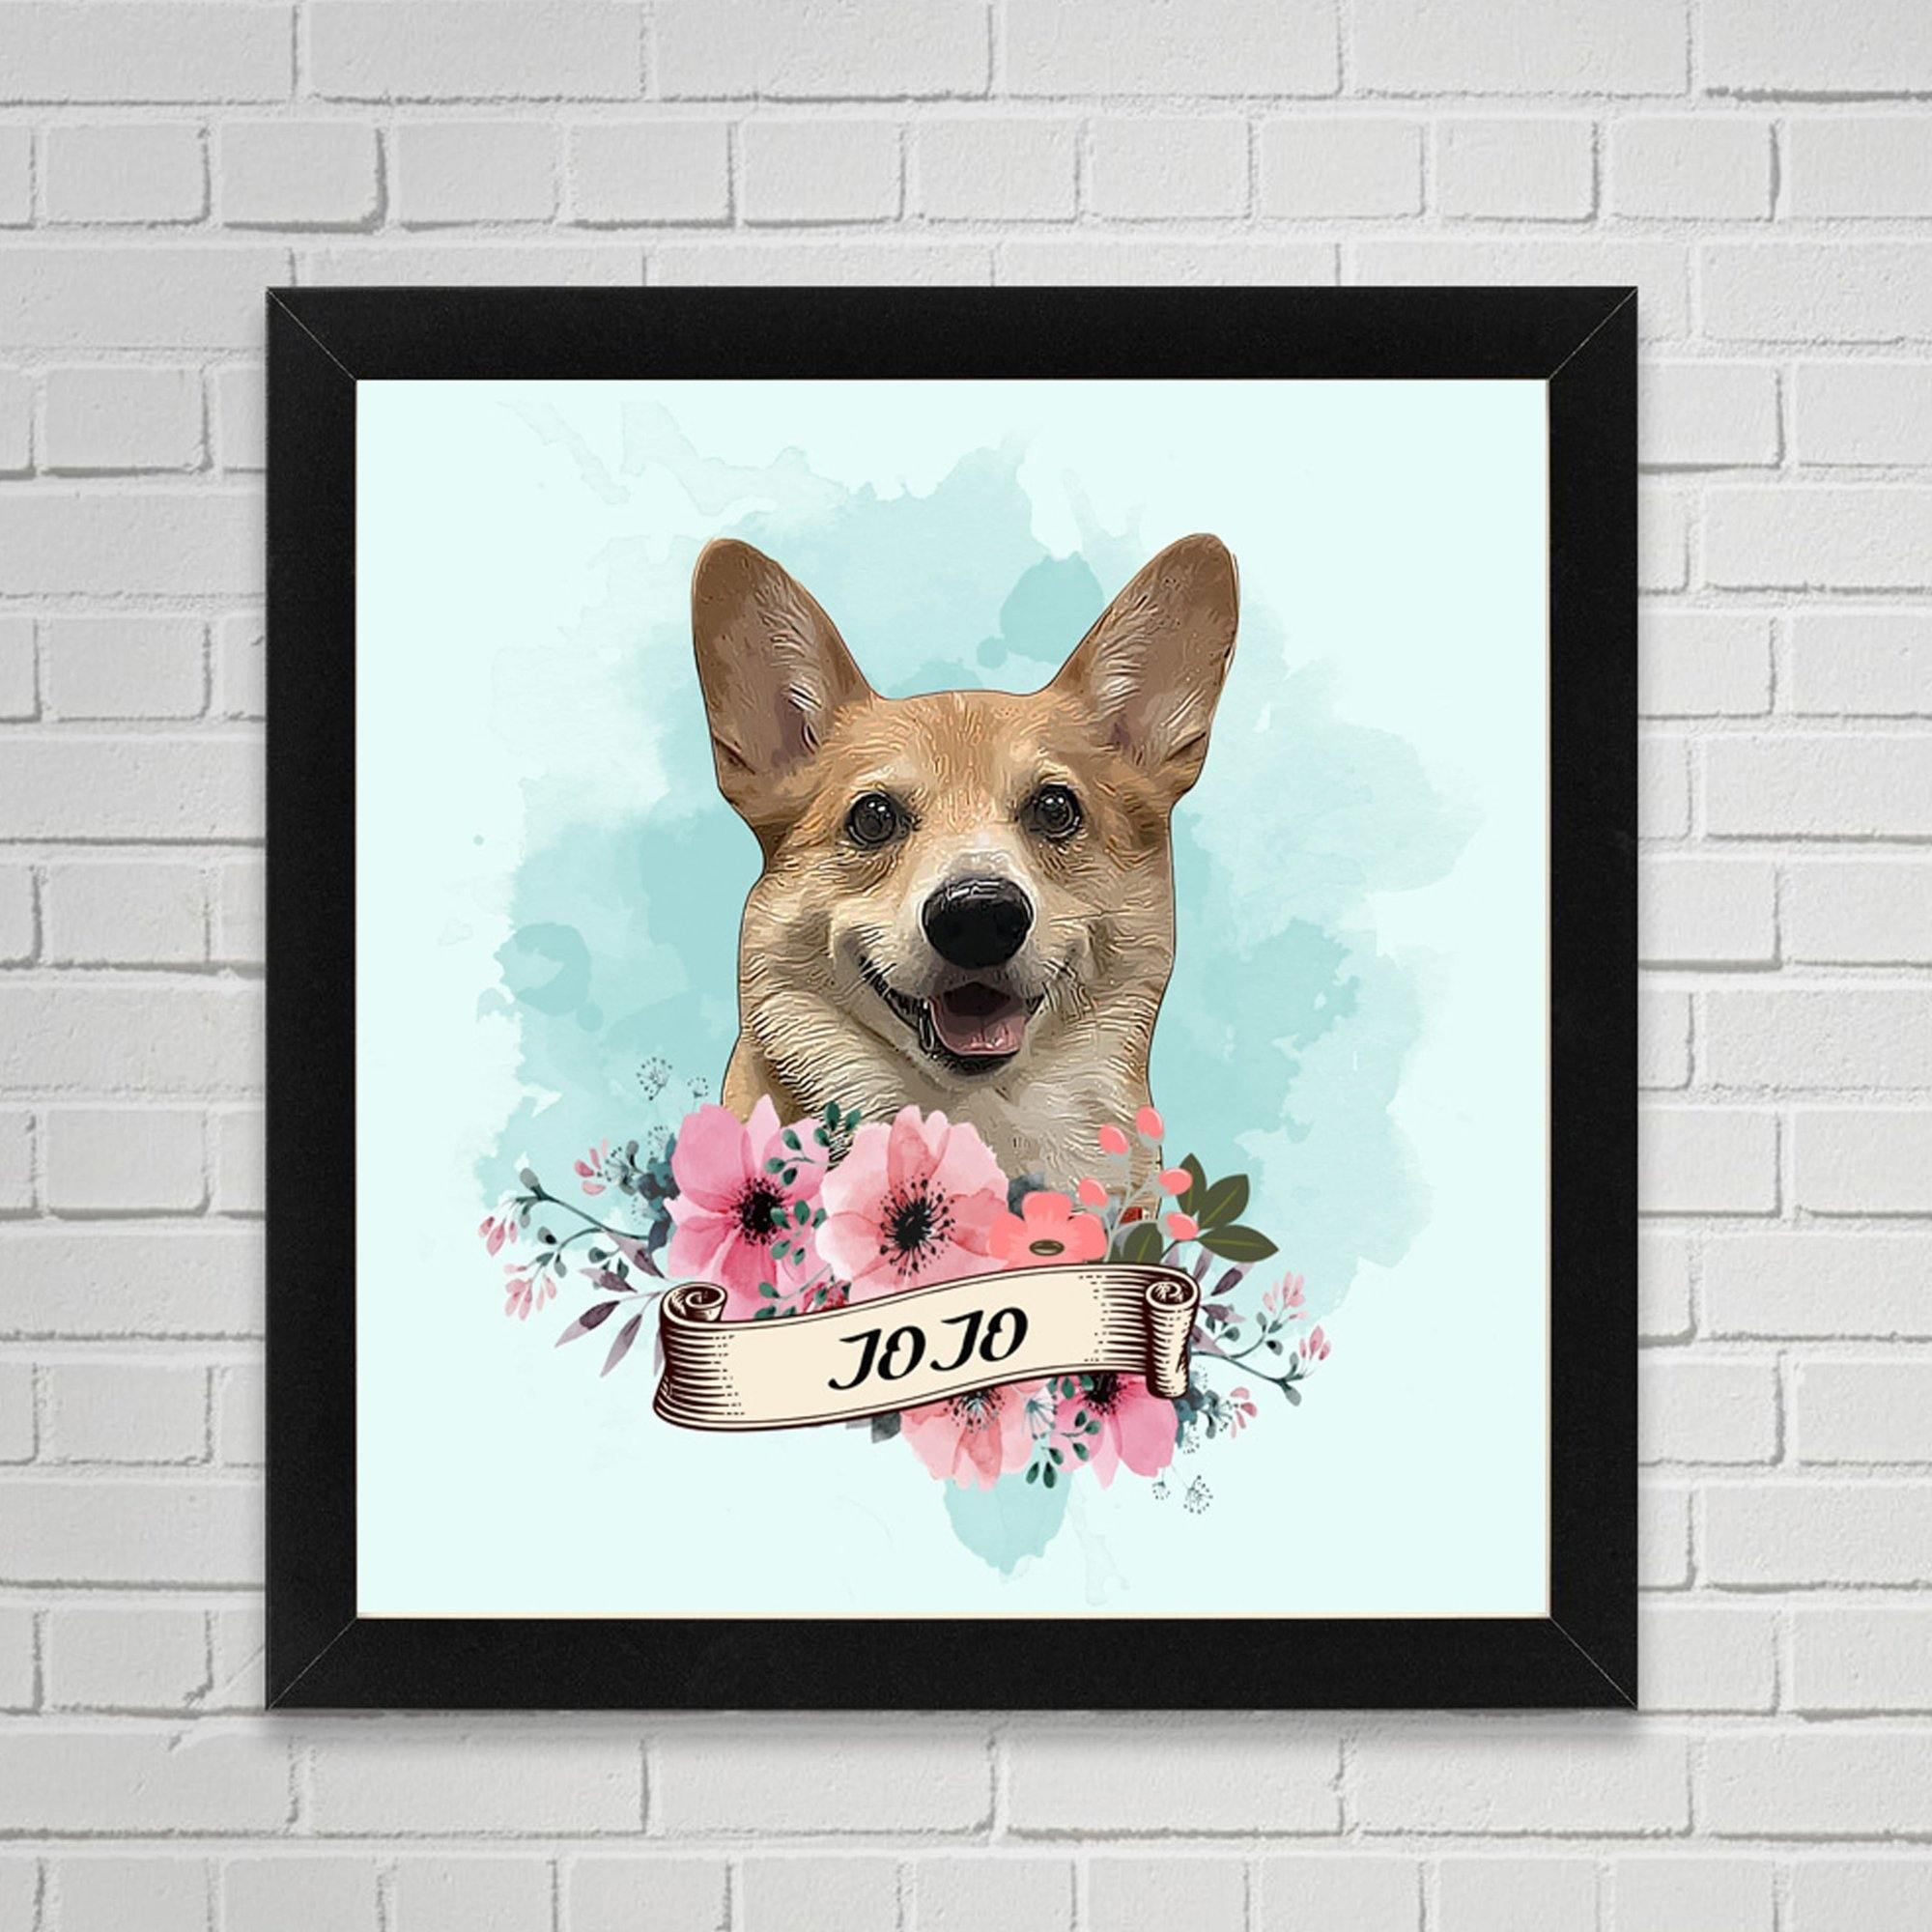 Personalised Pet Portrait Framed Canvas (Multiple Designs and Sizes) - Dog Chews